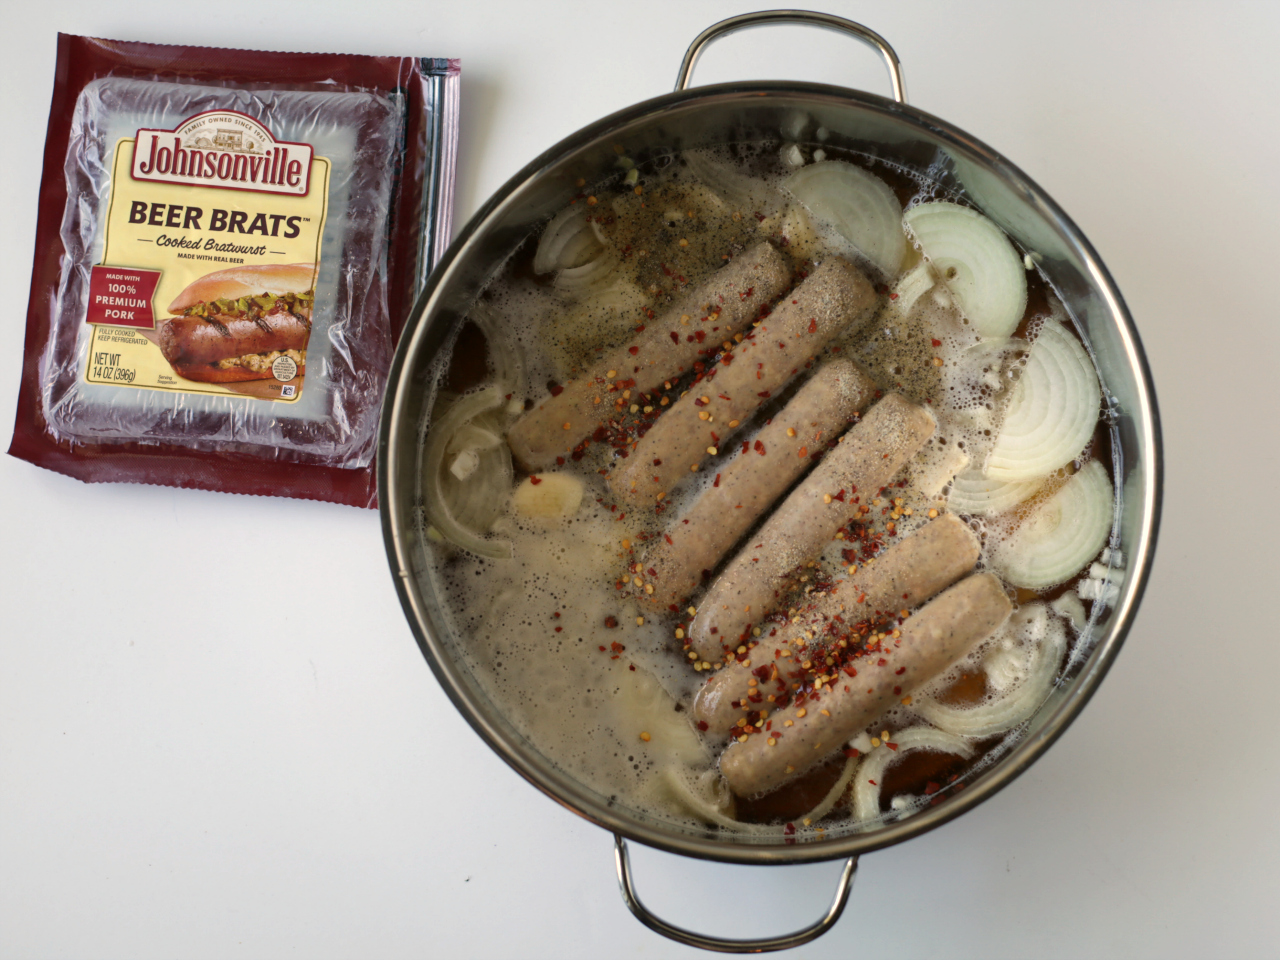 Grilled Beer Brats package, empty. Brats, onions, garlic and seasoning in pot.